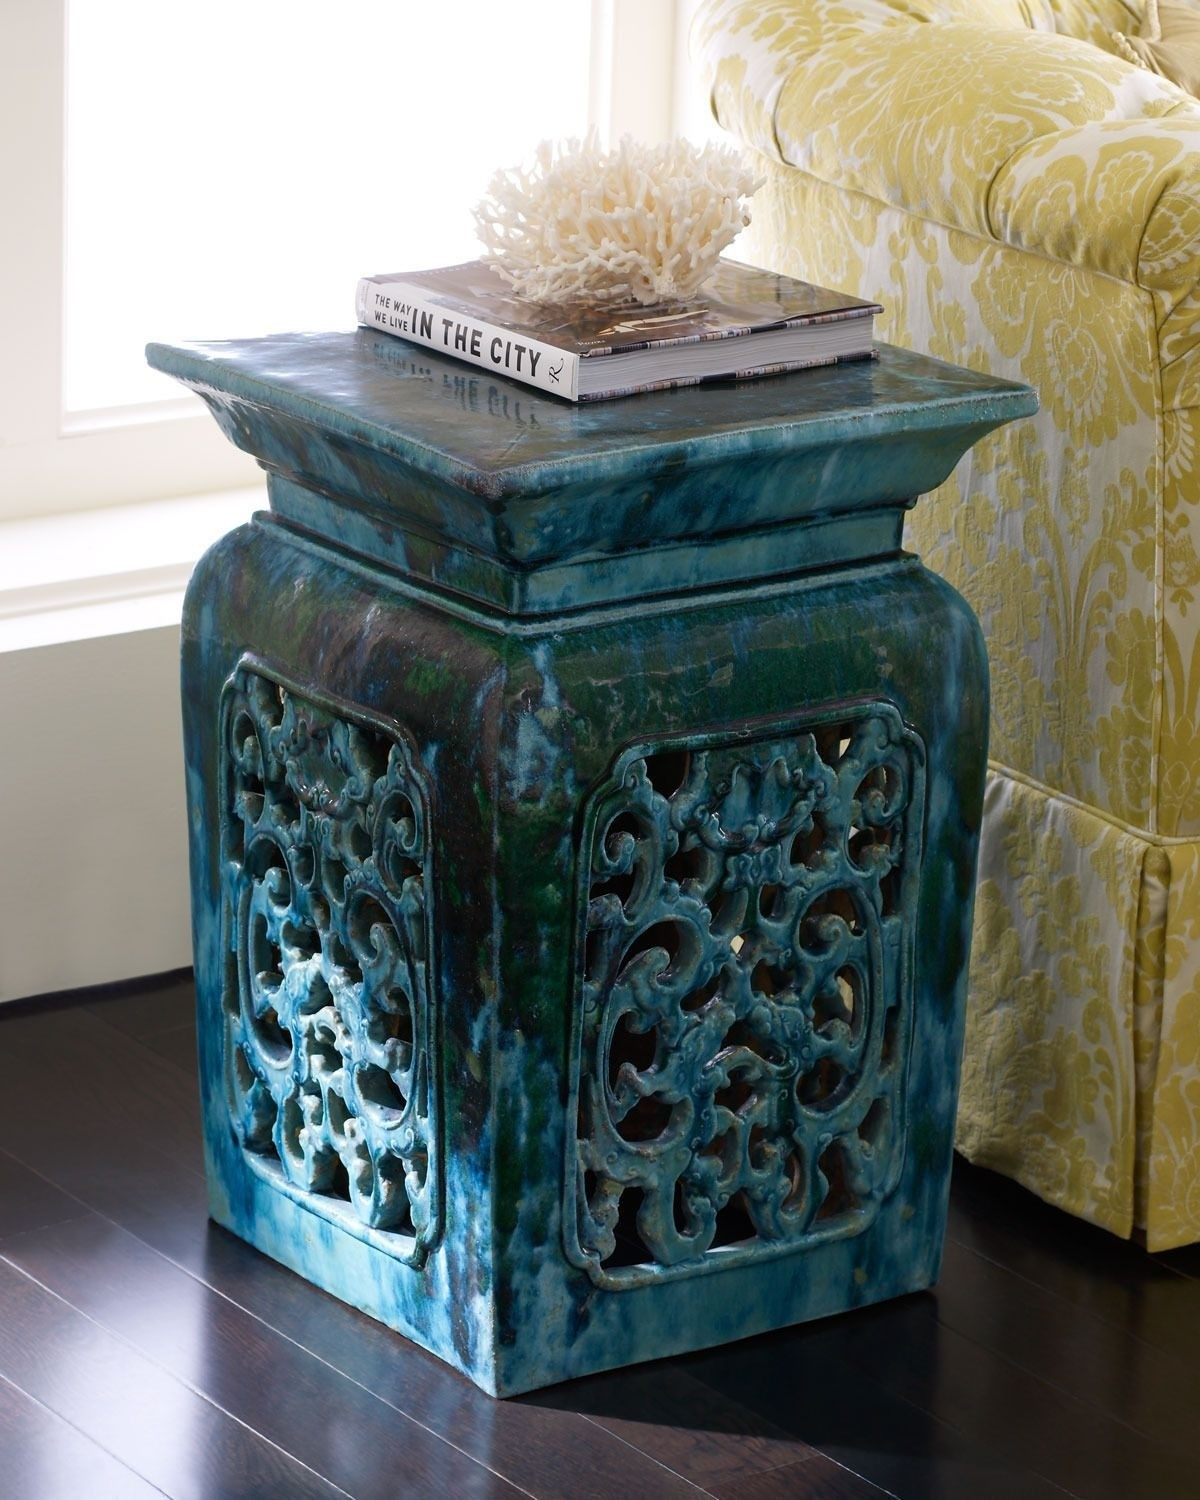 Vintage Garden Stool Handmade Vintage Ceramic Garden Stool With Intricate